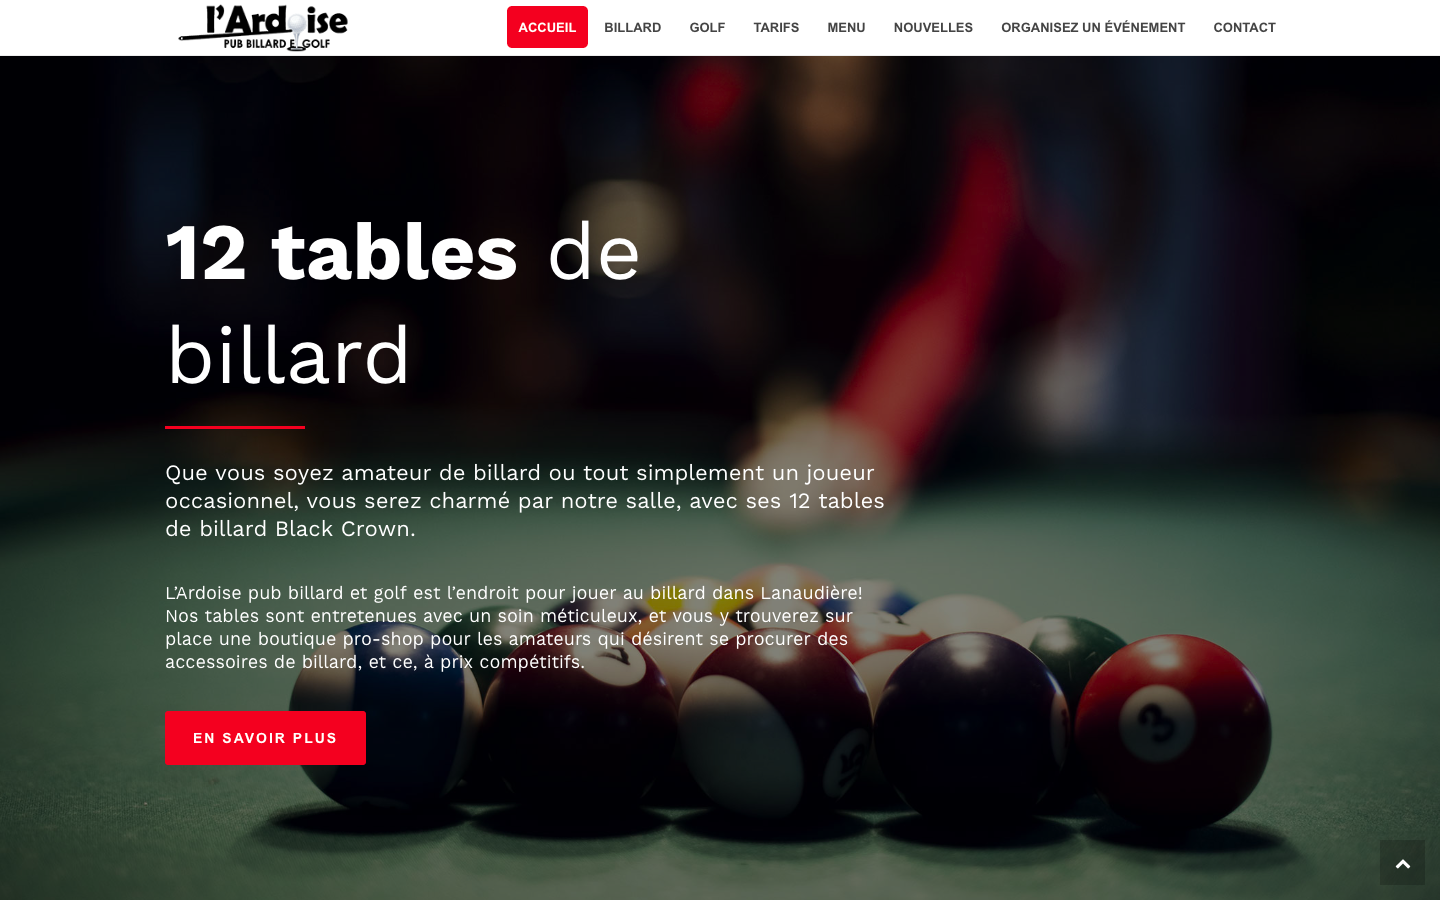 L'Ardoise pub billard et golf par 3leadership Marketing web pour PME 5